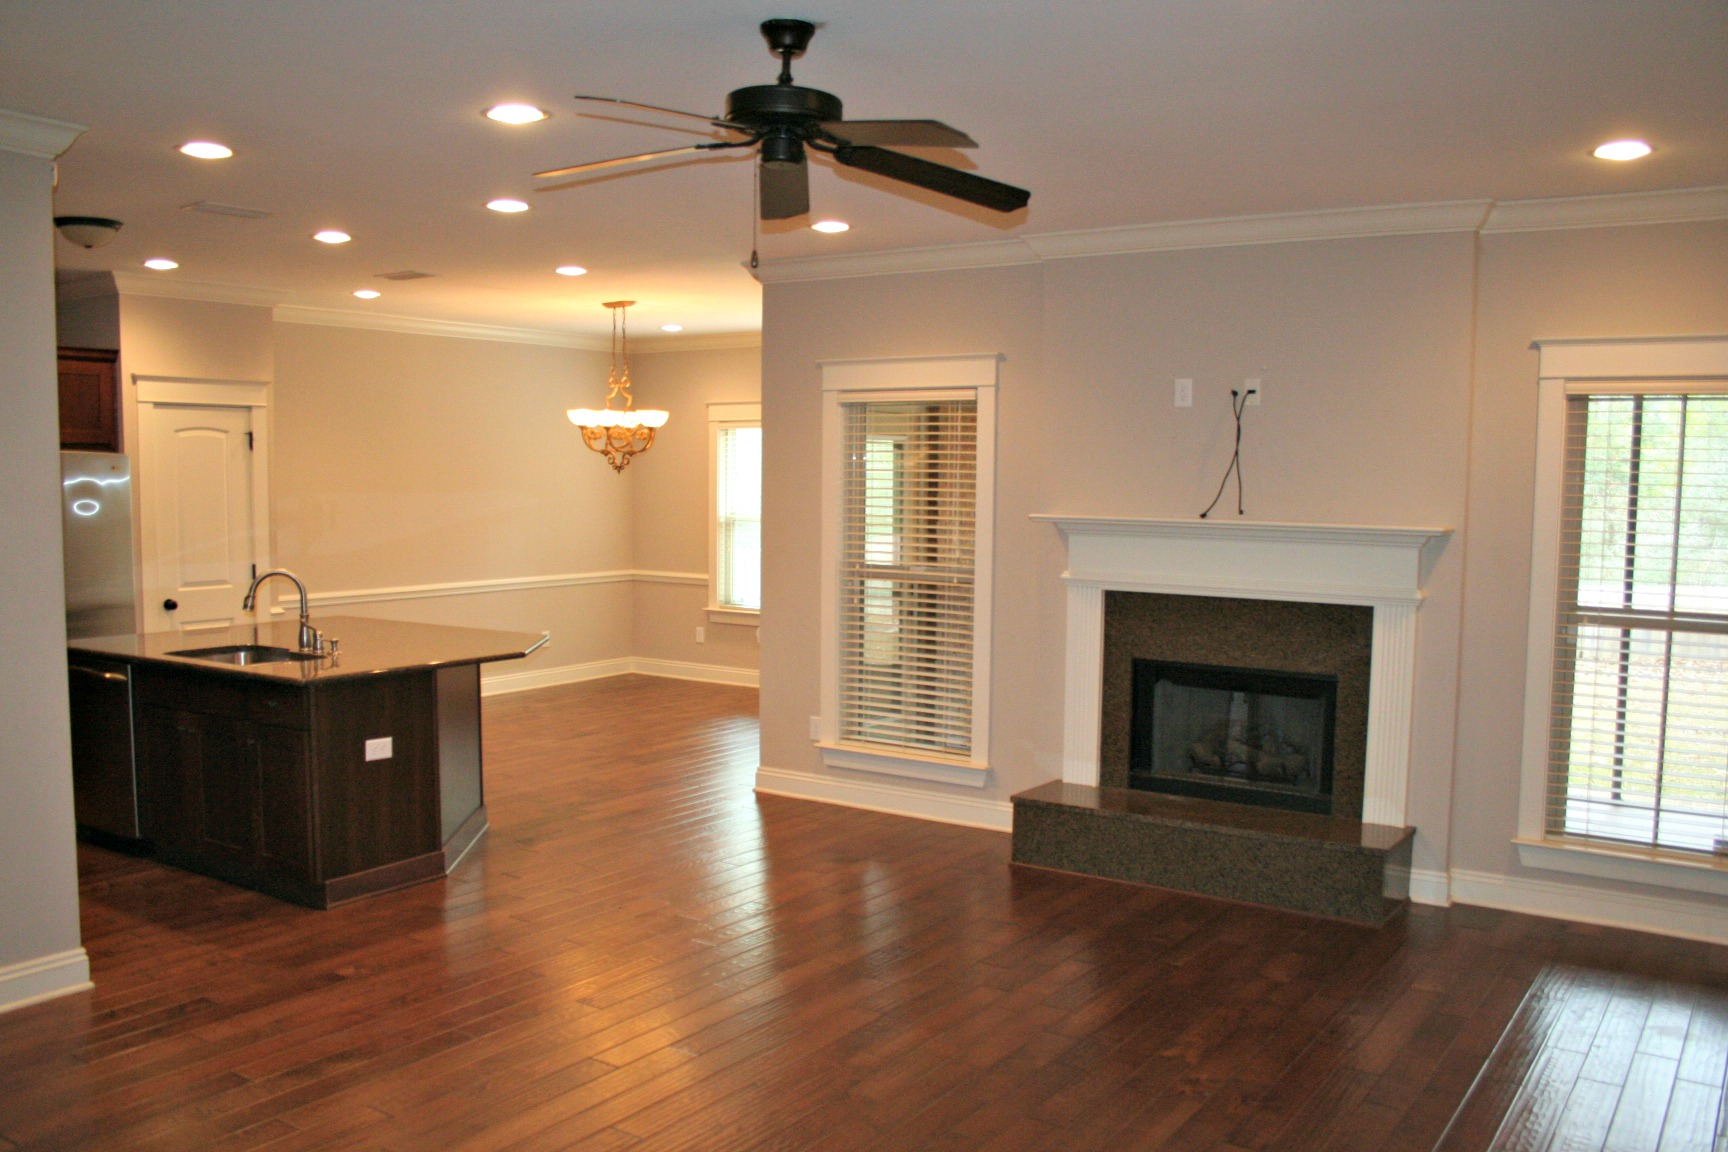 3377 hardwood dr saraland al 36571 open floor plan the for Hardwood floor plans